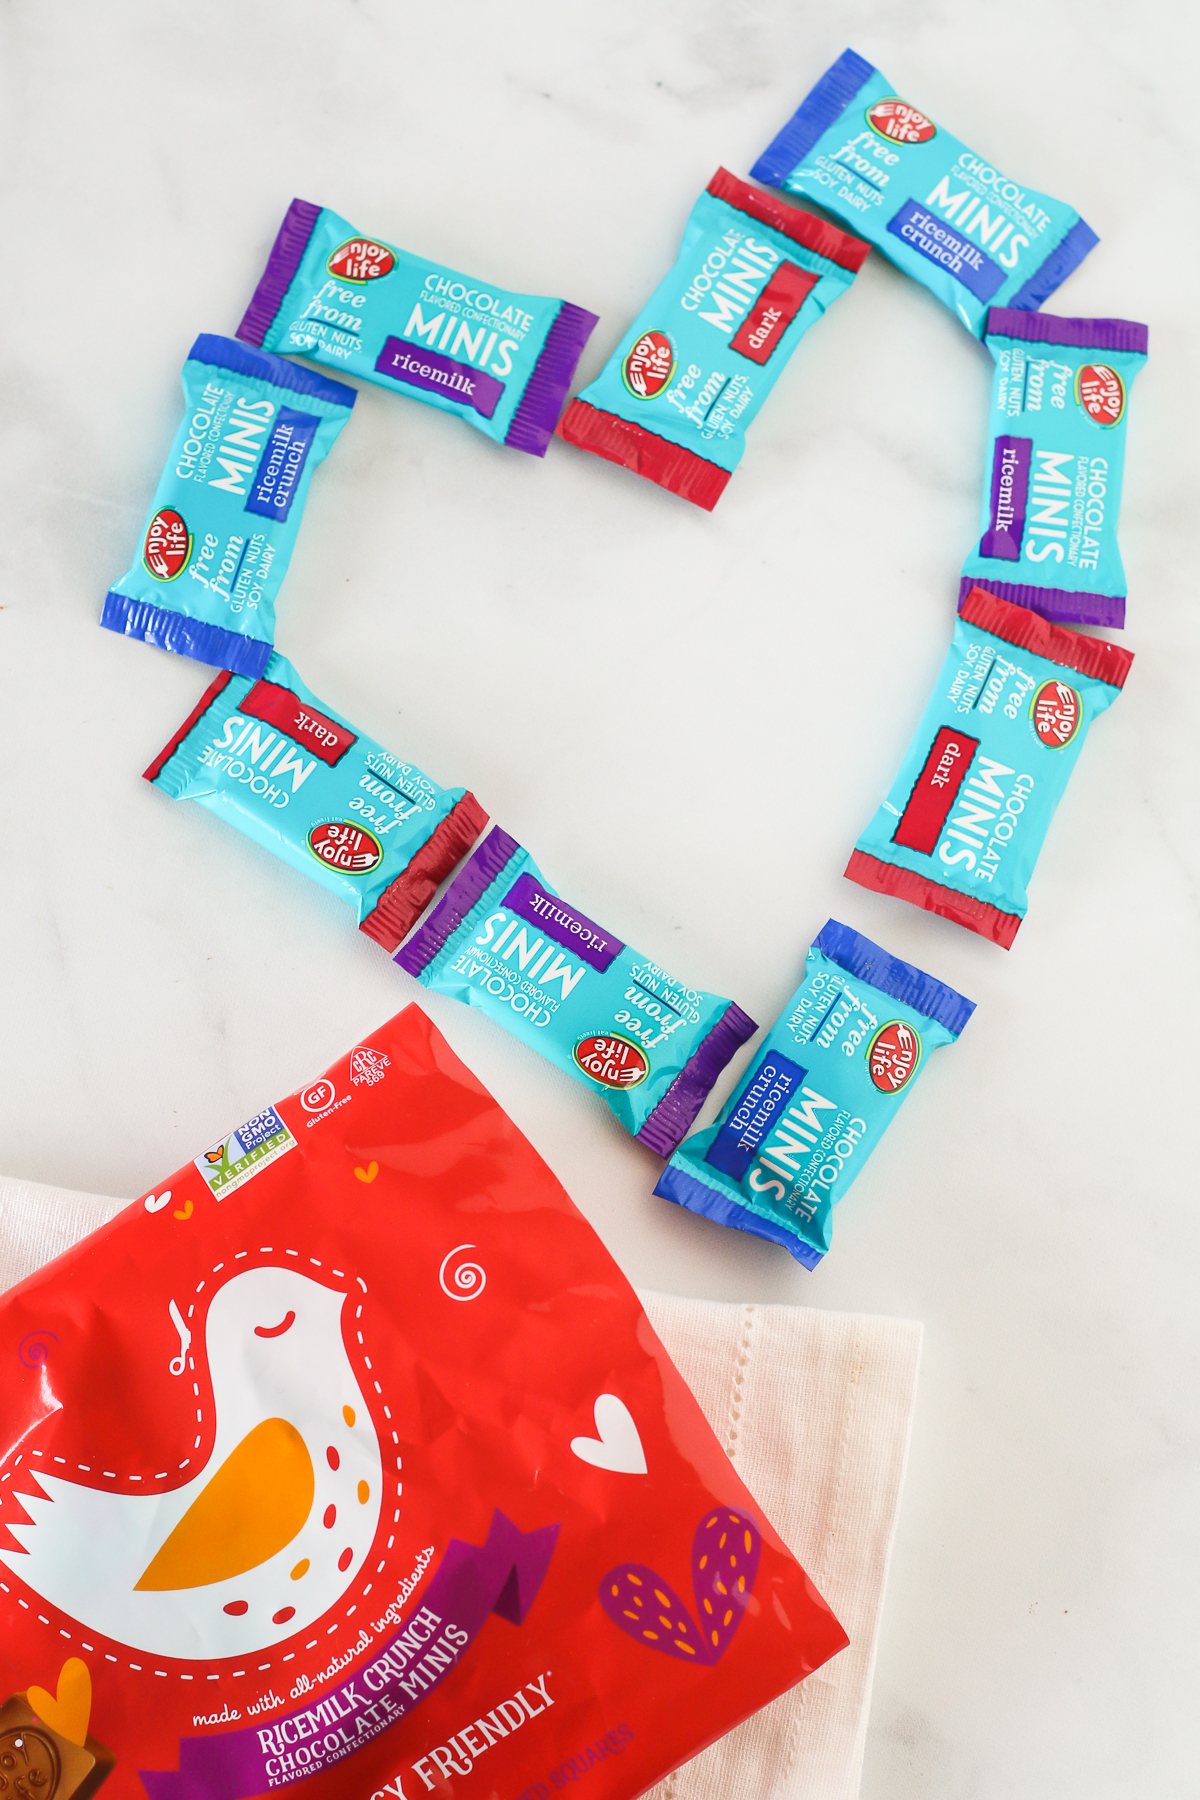 Chocolate Minis from Enjoy Life. These adorable little chocolate bars are free of the top 8 allergens!